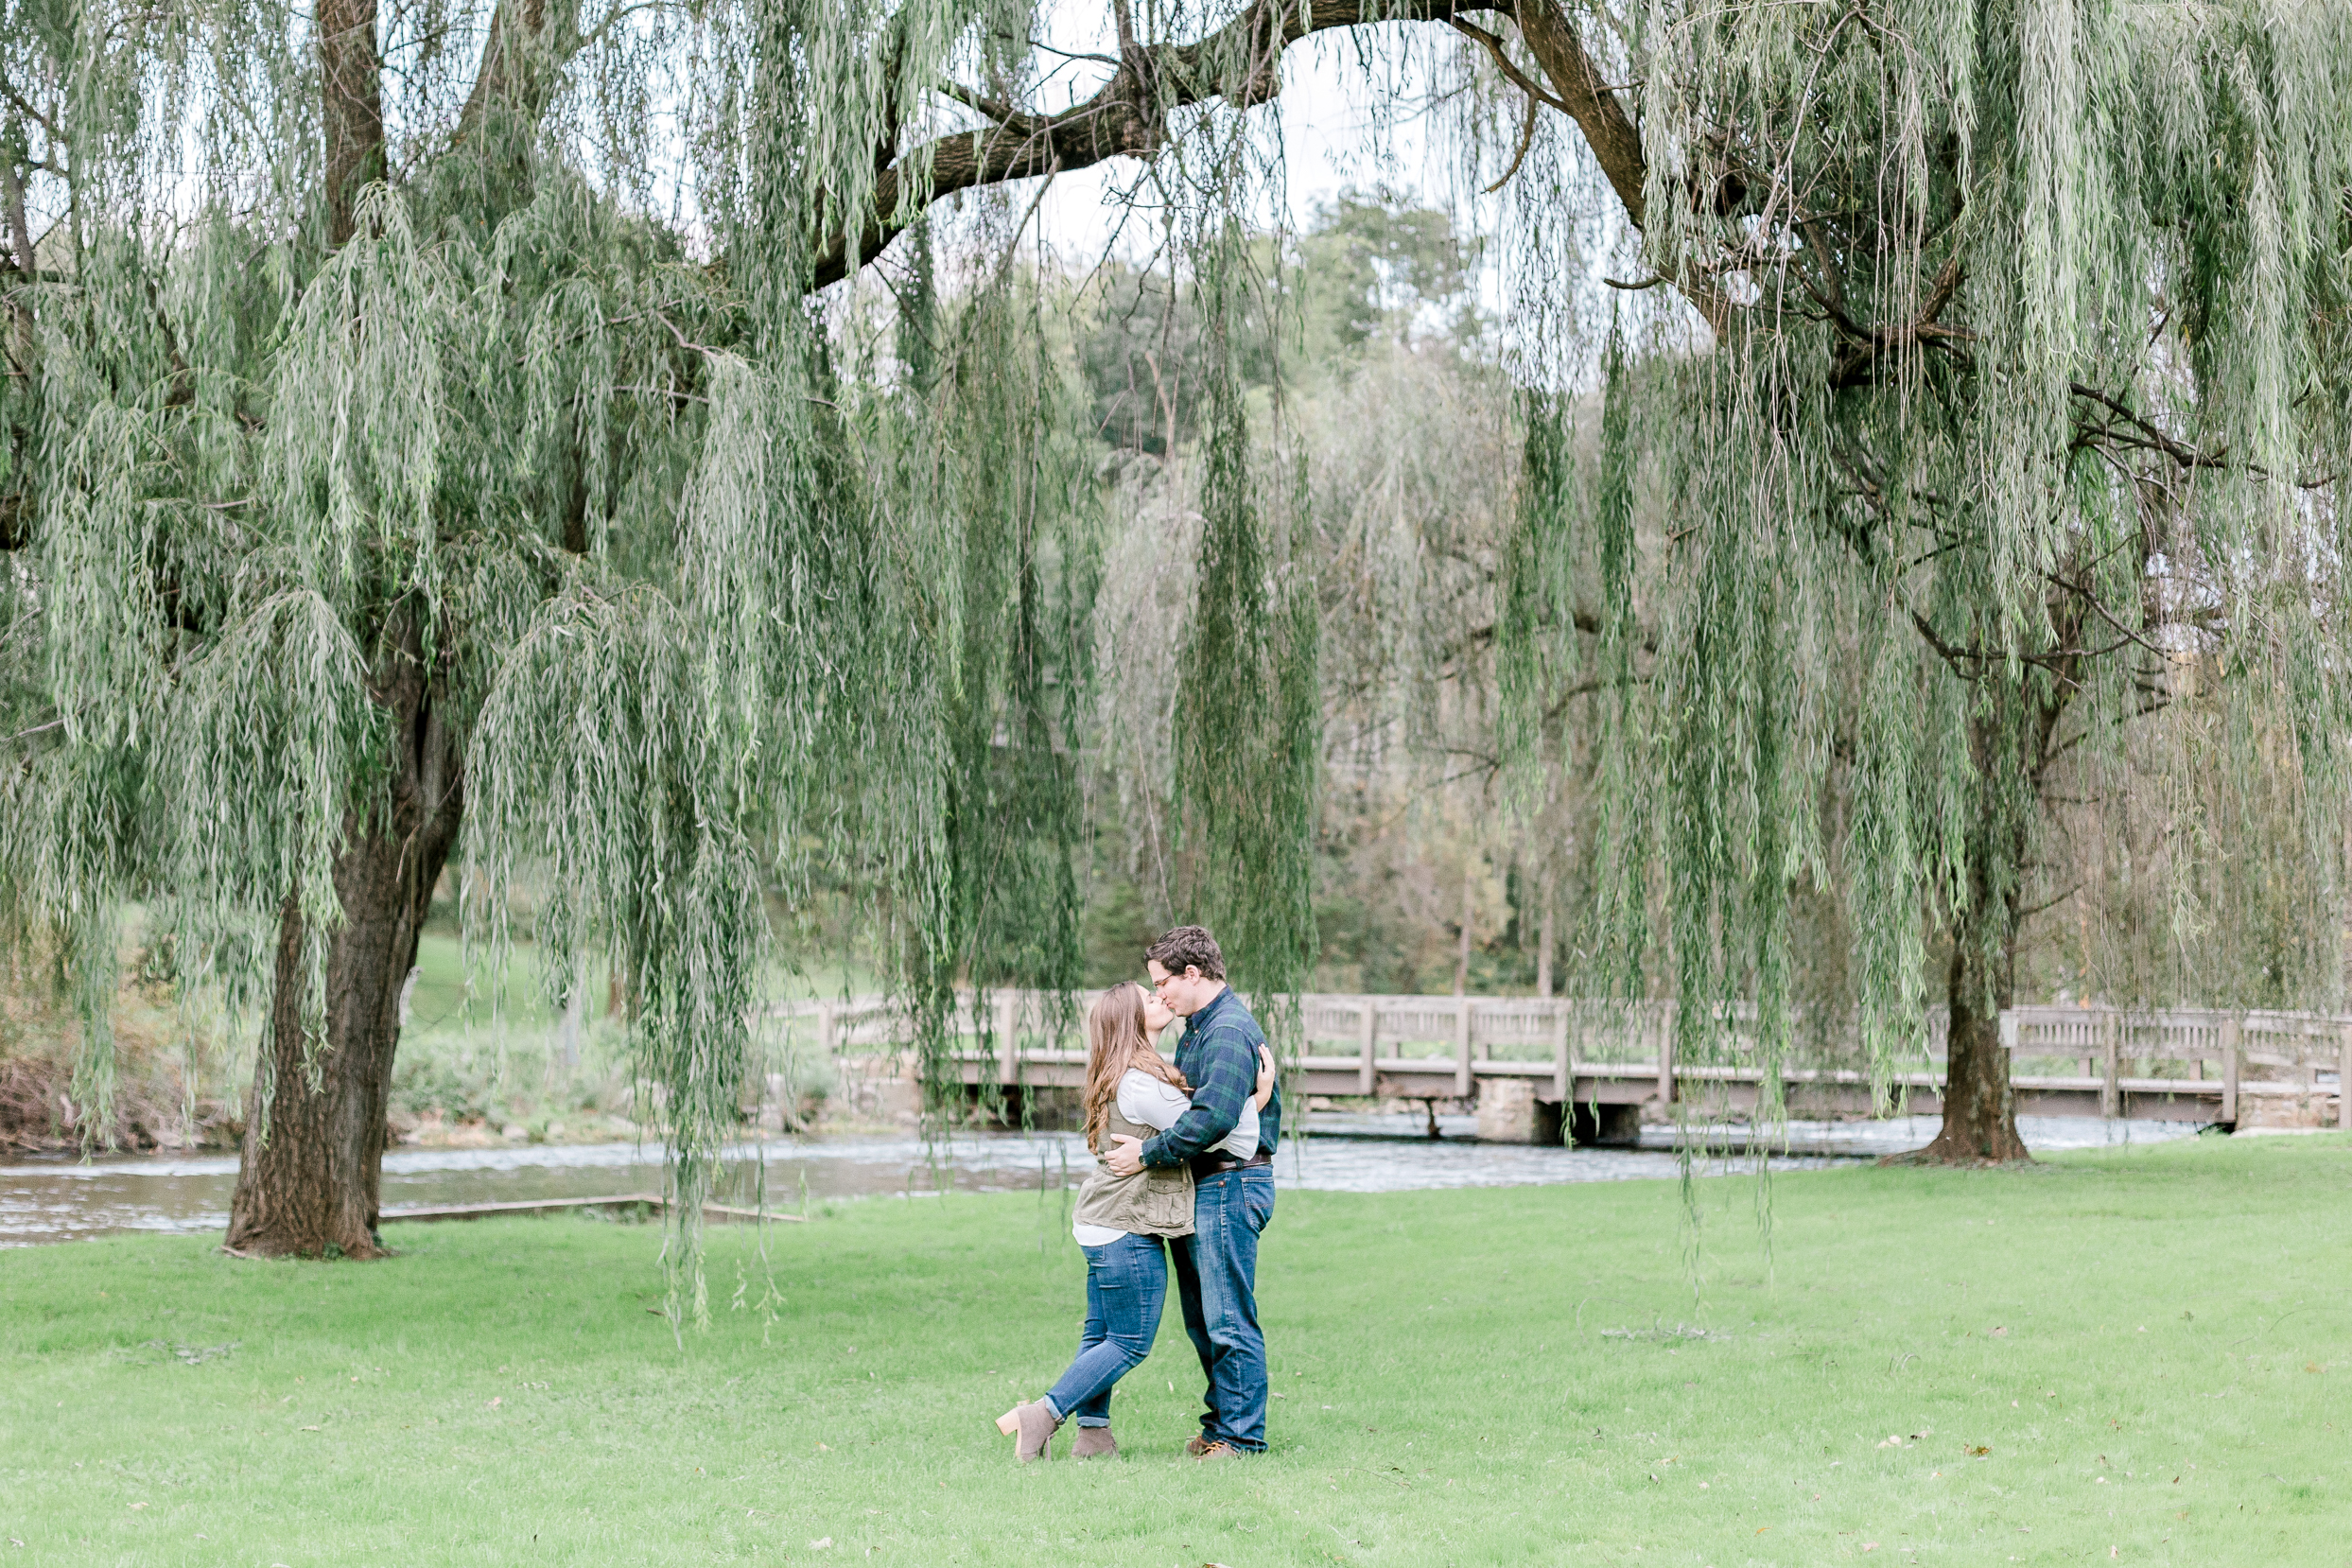 Lehigh valley Fish hatchery fall Engagement Session wedding and lifestyle photographer Lytle Photo Co (63 of 66).jpg